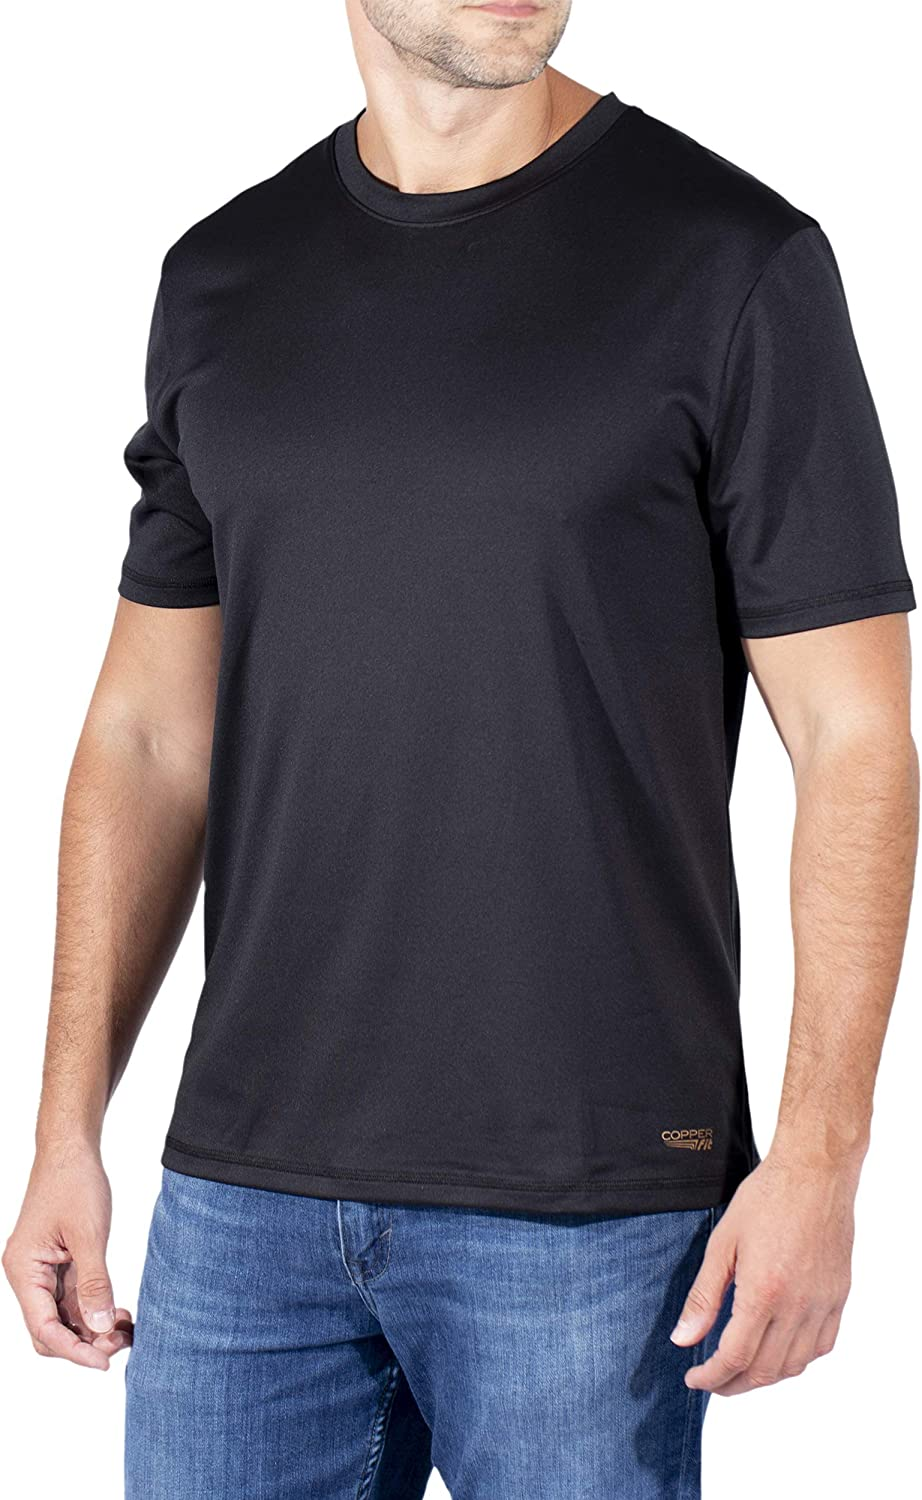 Copper Fit Energy Mens NEW Charlotte Mall Performance Crew T-Shirt Dry